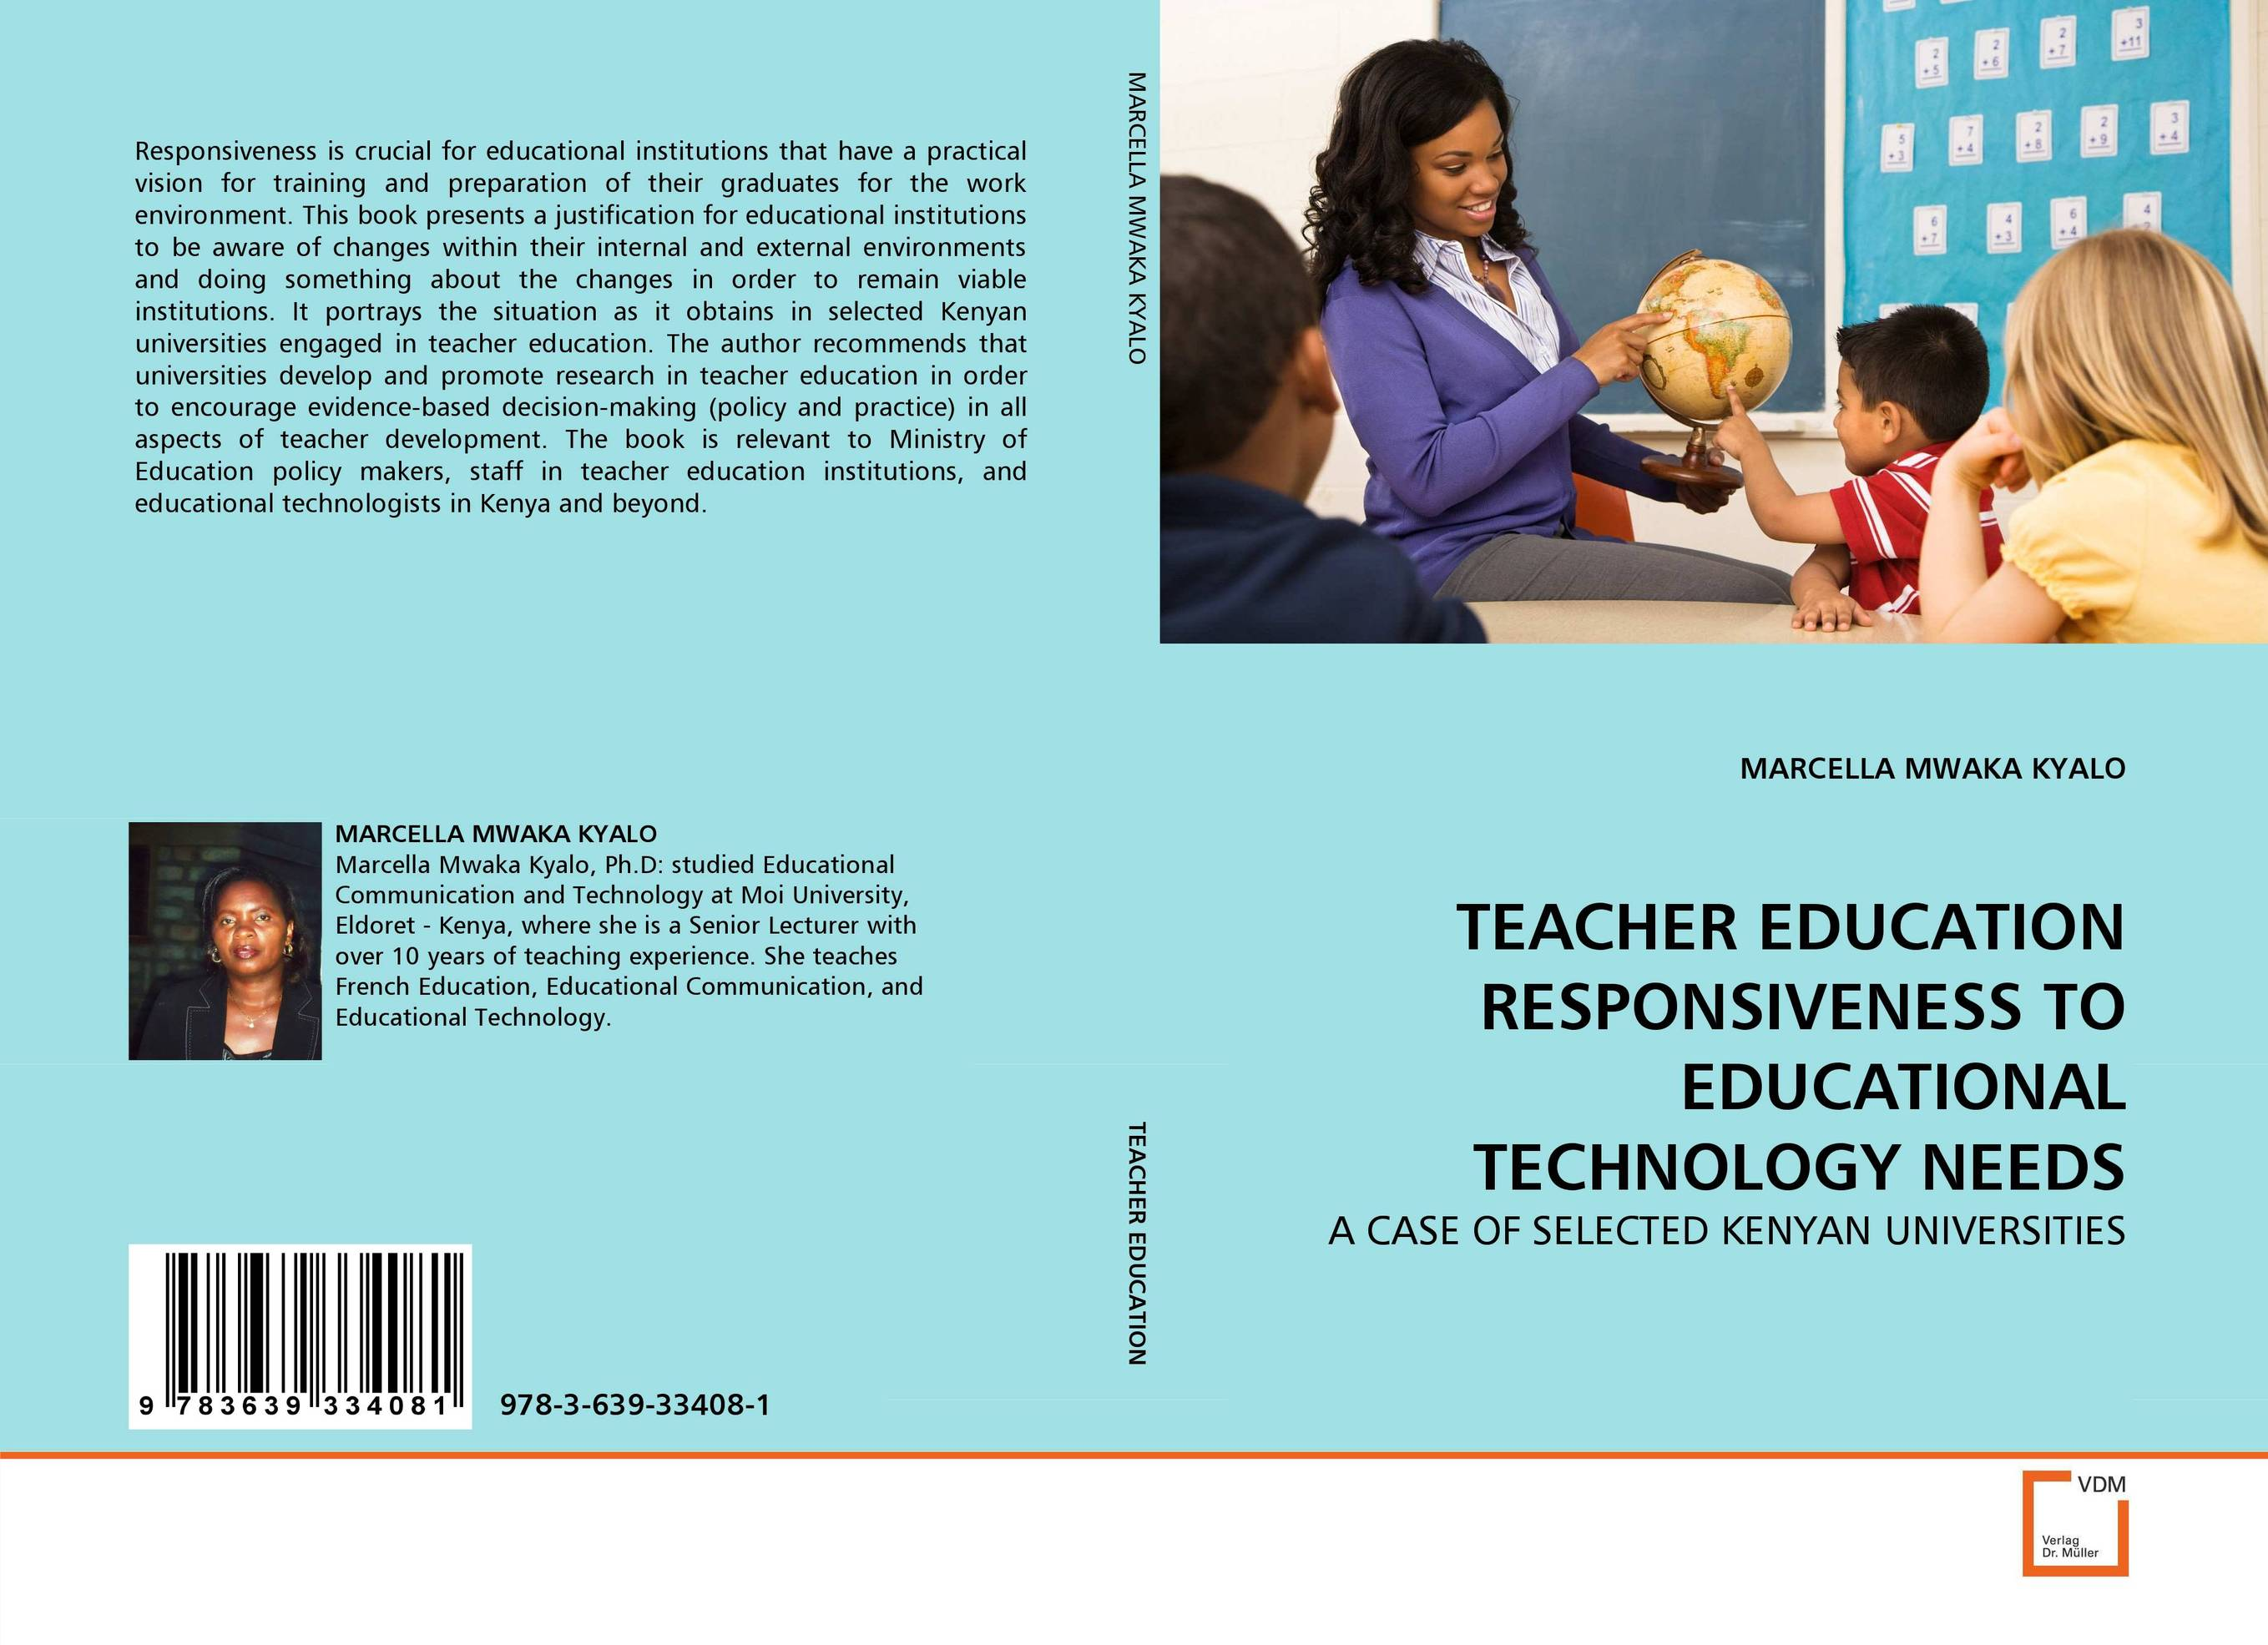 TEACHER EDUCATION RESPONSIVENESS TO EDUCATIONAL TECHNOLOGY NEEDS teacher education in kenya